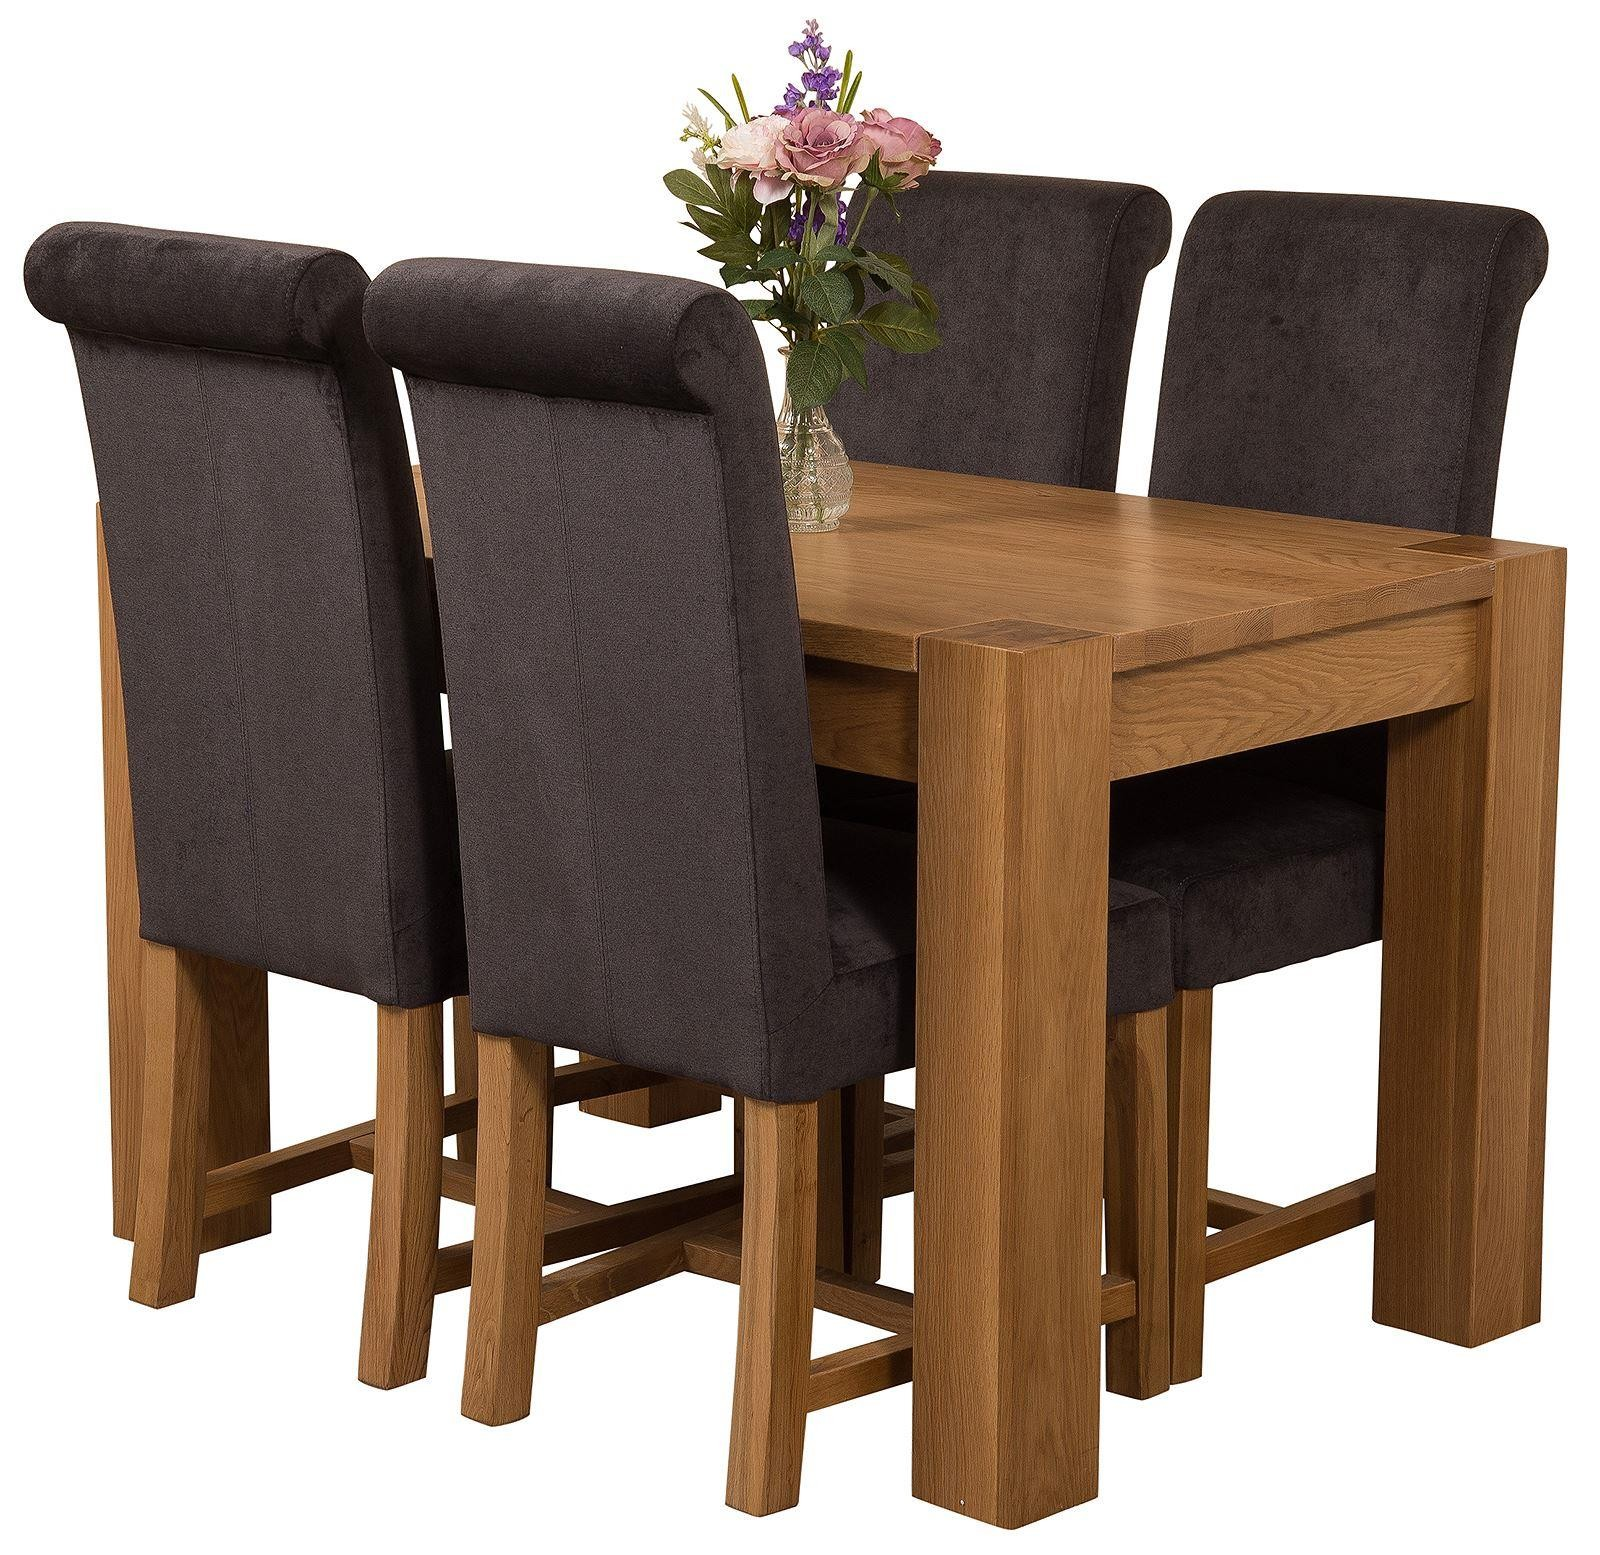 Kuba Solid Oak 125cm Dining Table with 4 Washington Dining Chairs [Black Fabric]